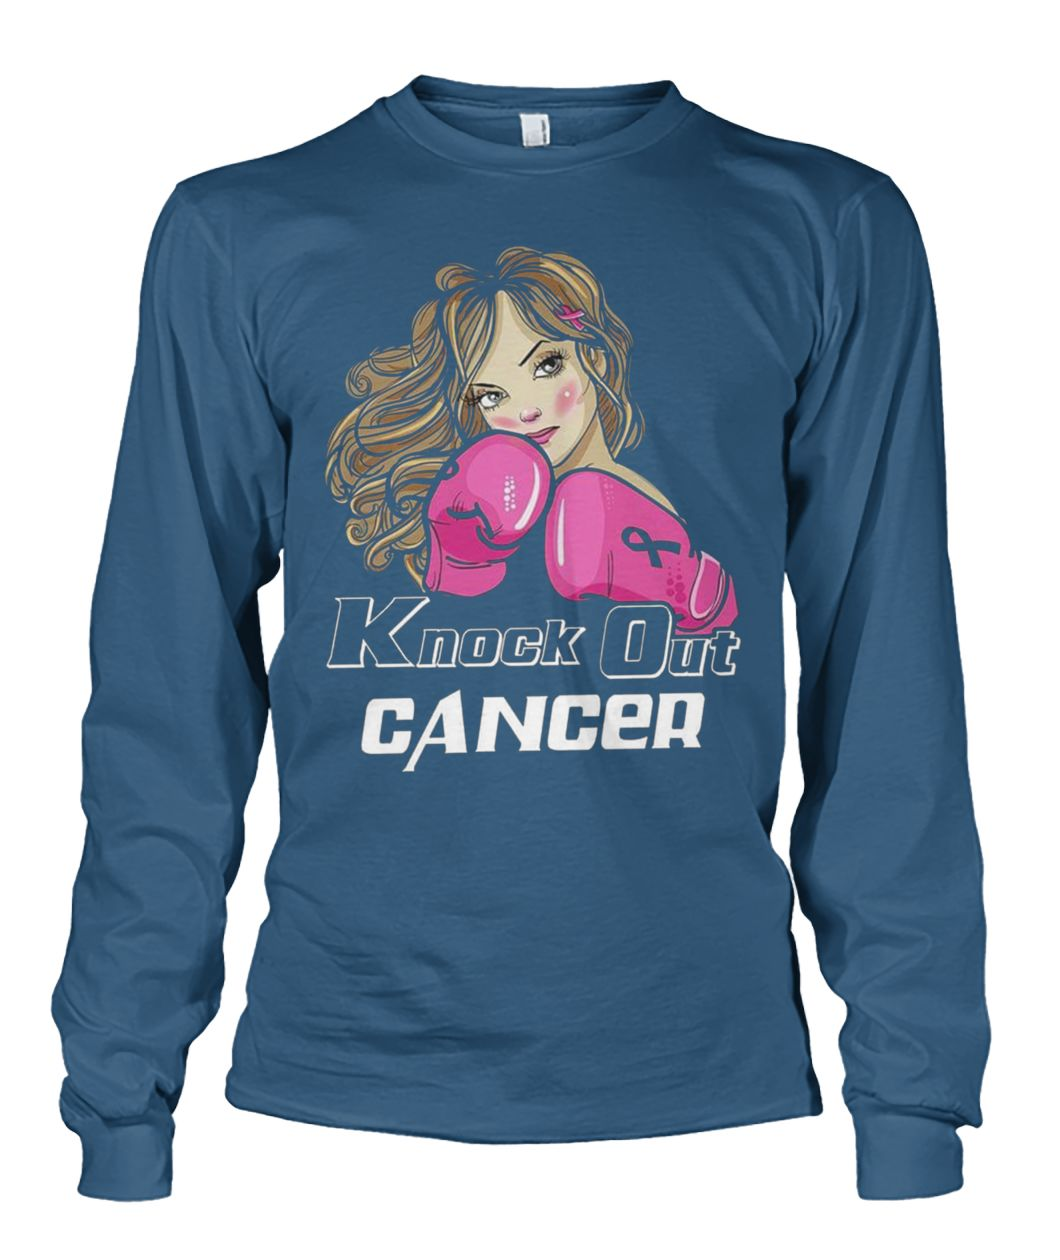 Knock out breast cancer unisex long sleeve